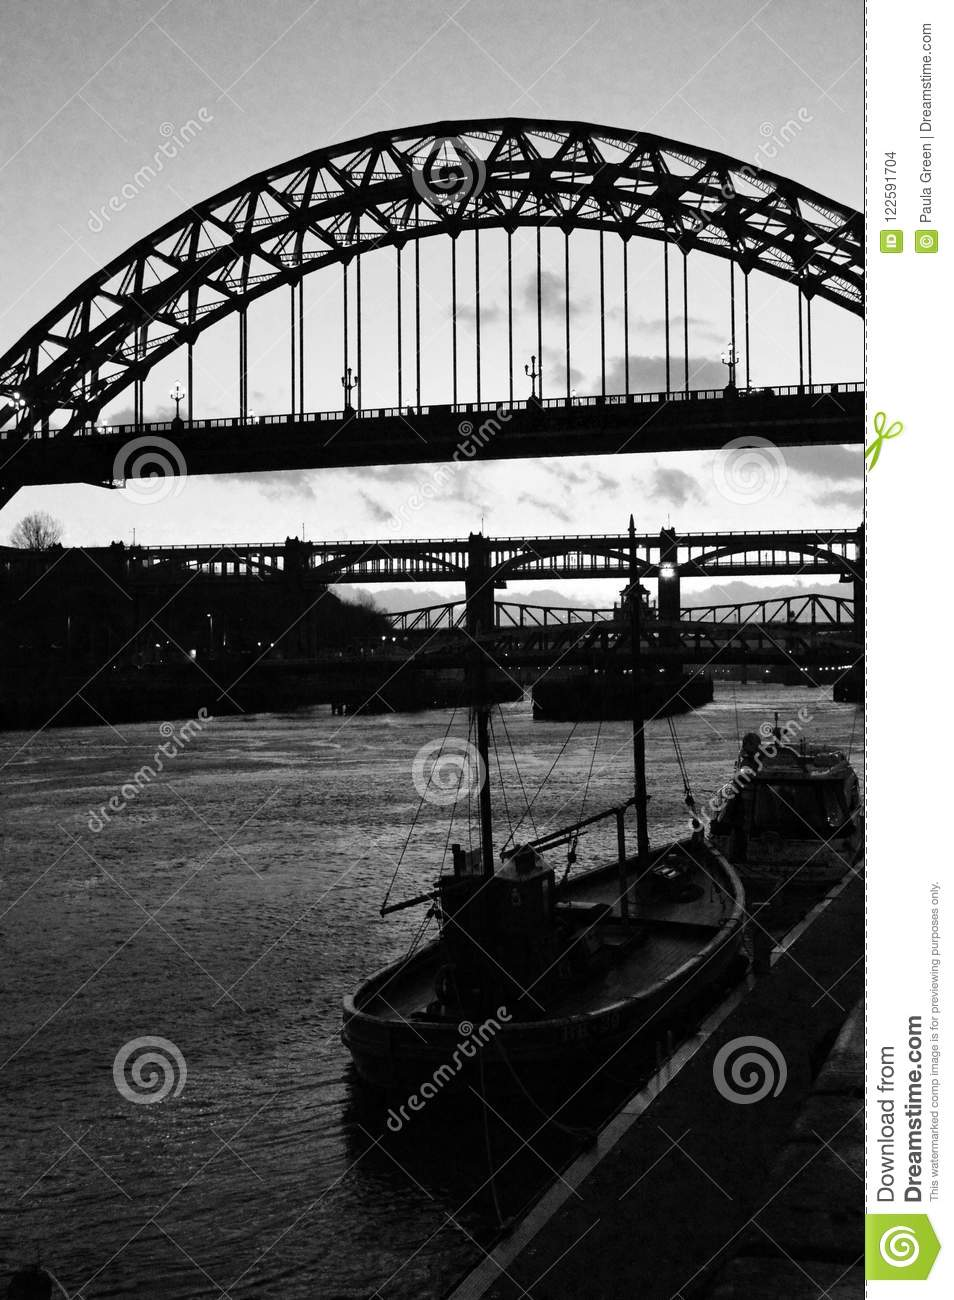 Newcastle upon tyne north east england famous bridges over the river tyne in silhouette and black and white portrait orientation